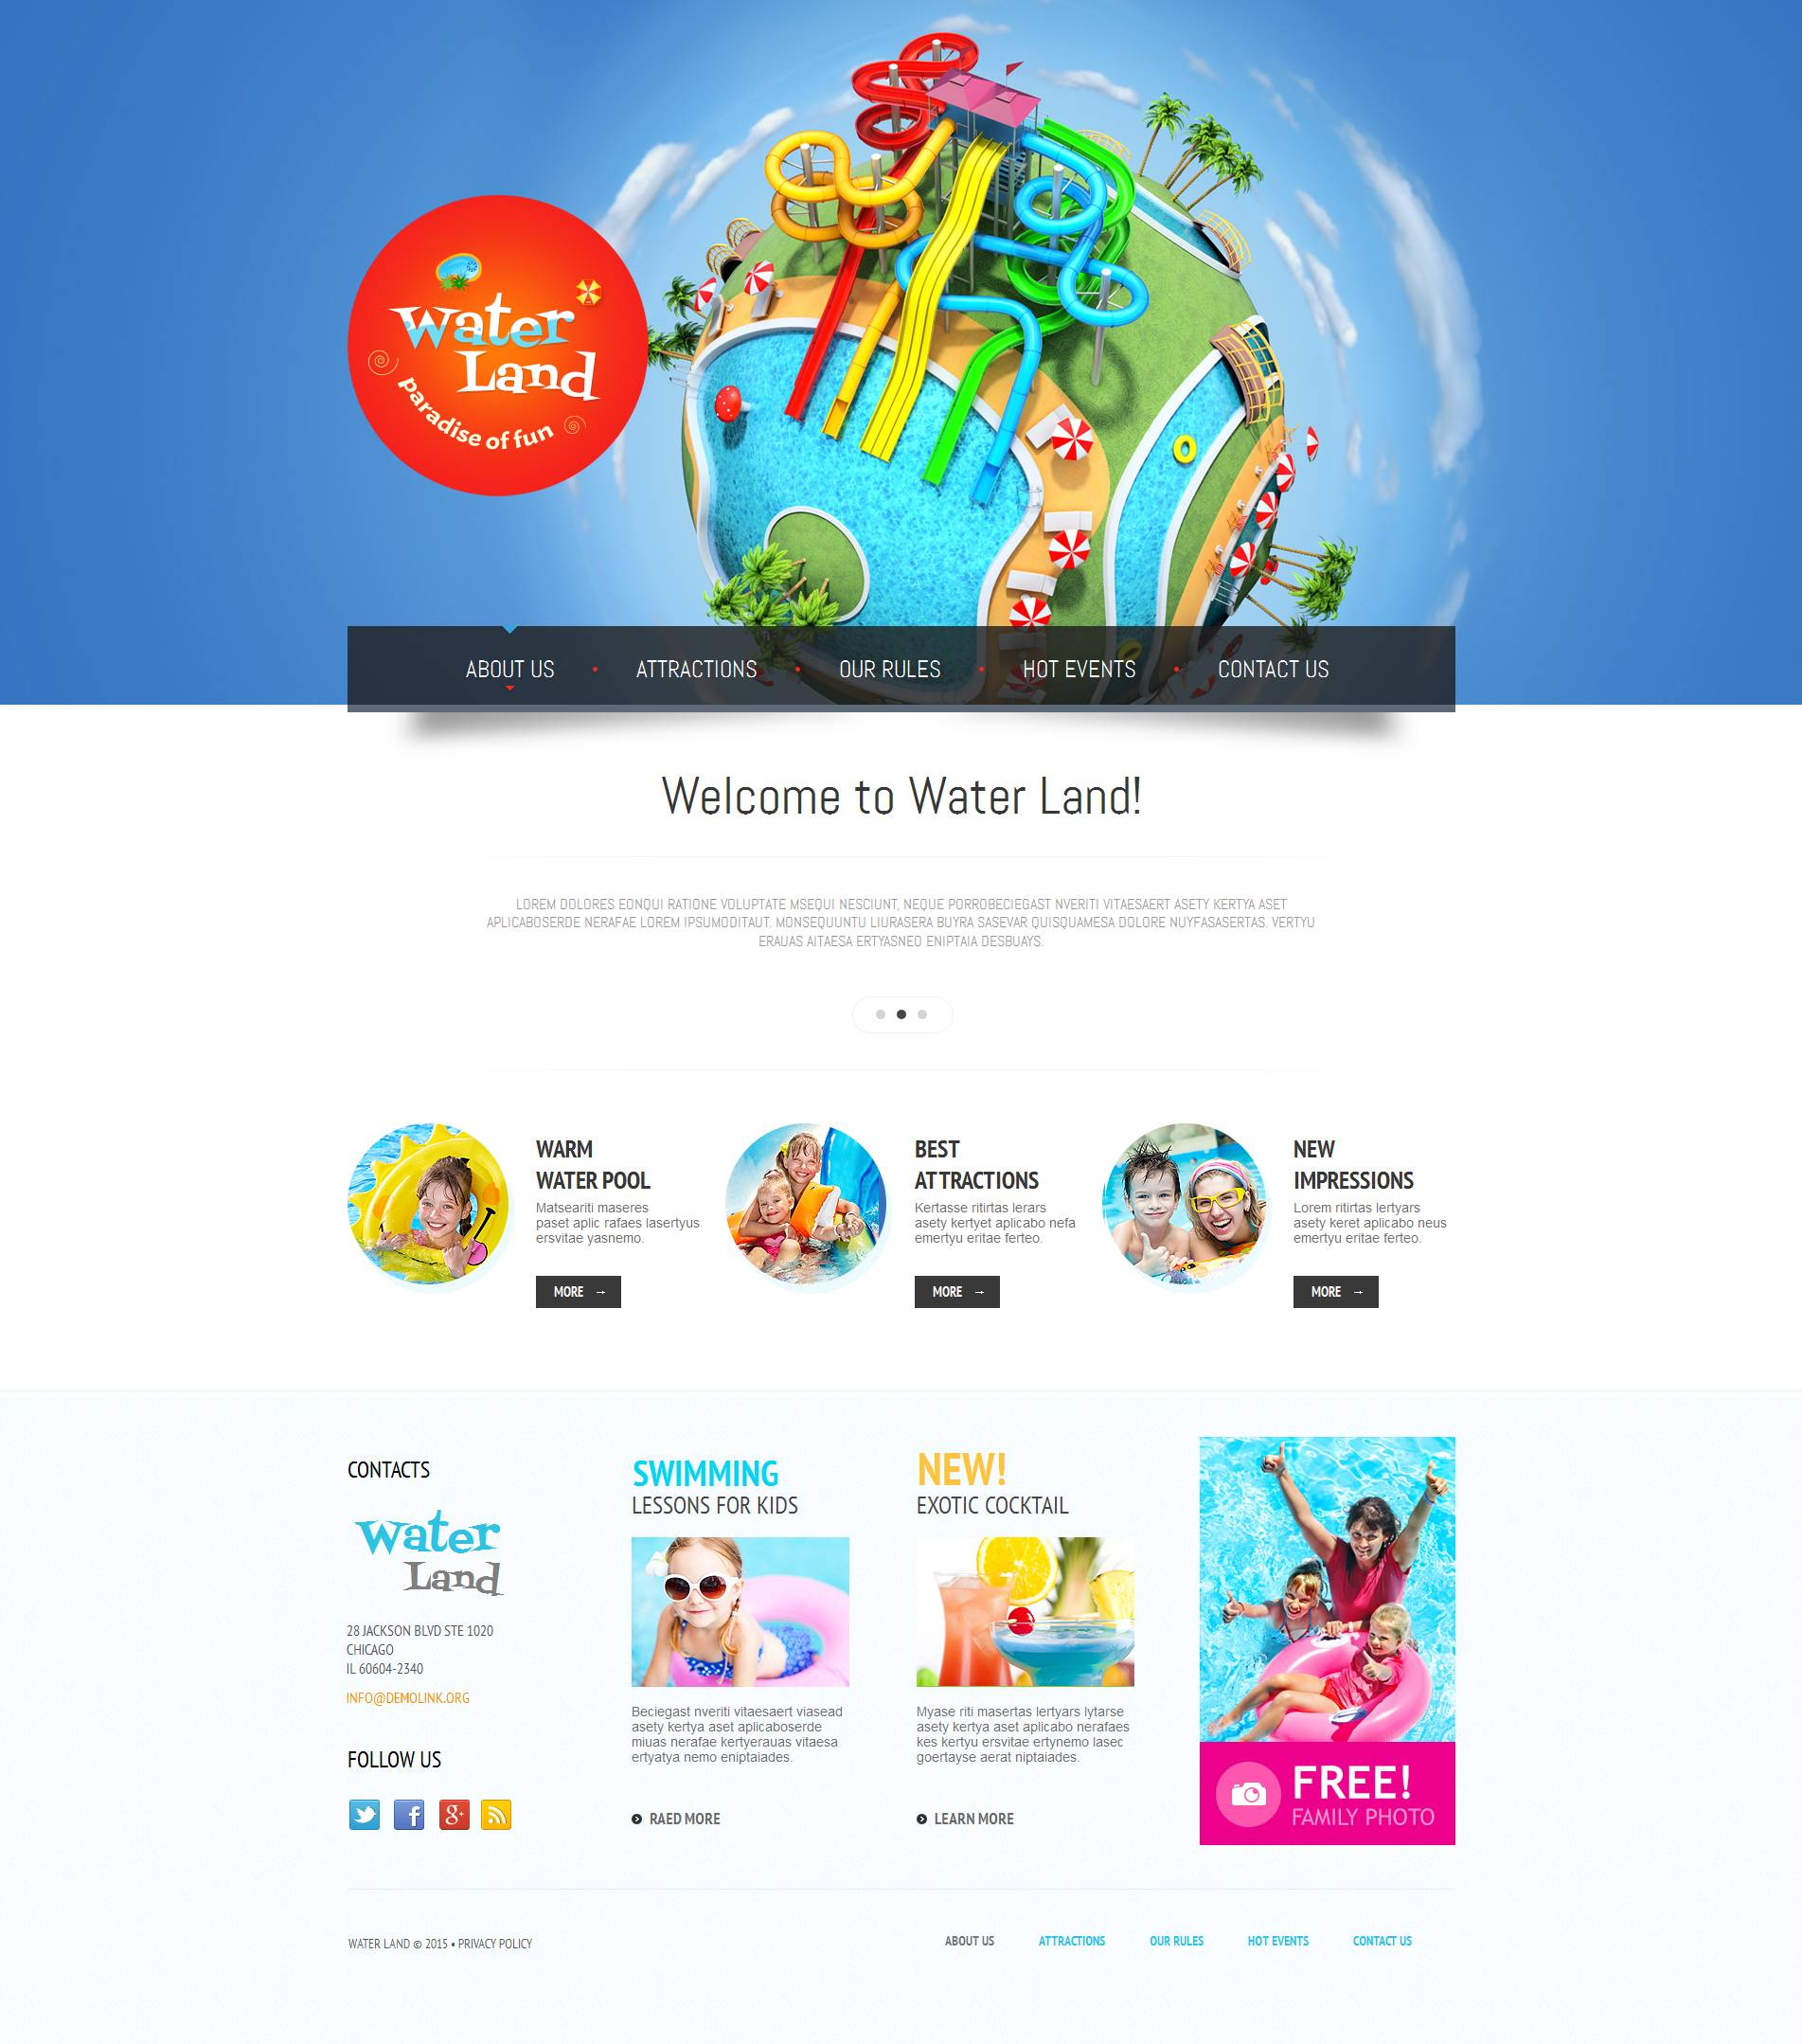 The Water Land Moto CMS HTML Design 53518, one of the best Moto CMS HTML templates of its kind (entertainment), also known as water land Moto CMS HTML template, aqua Moto CMS HTML template, part Moto CMS HTML template, underwater Moto CMS HTML template, aquatic Moto CMS HTML template, water Moto CMS HTML template, photos Moto CMS HTML template, gallery Moto CMS HTML template, entertainment Moto CMS HTML template, prices Moto CMS HTML template, rest Moto CMS HTML template, attractions Moto CMS HTML template, impressions and related with water land, aqua, part, underwater, aquatic, water, photos, gallery, entertainment, prices, rest, attractions, impressions, etc.